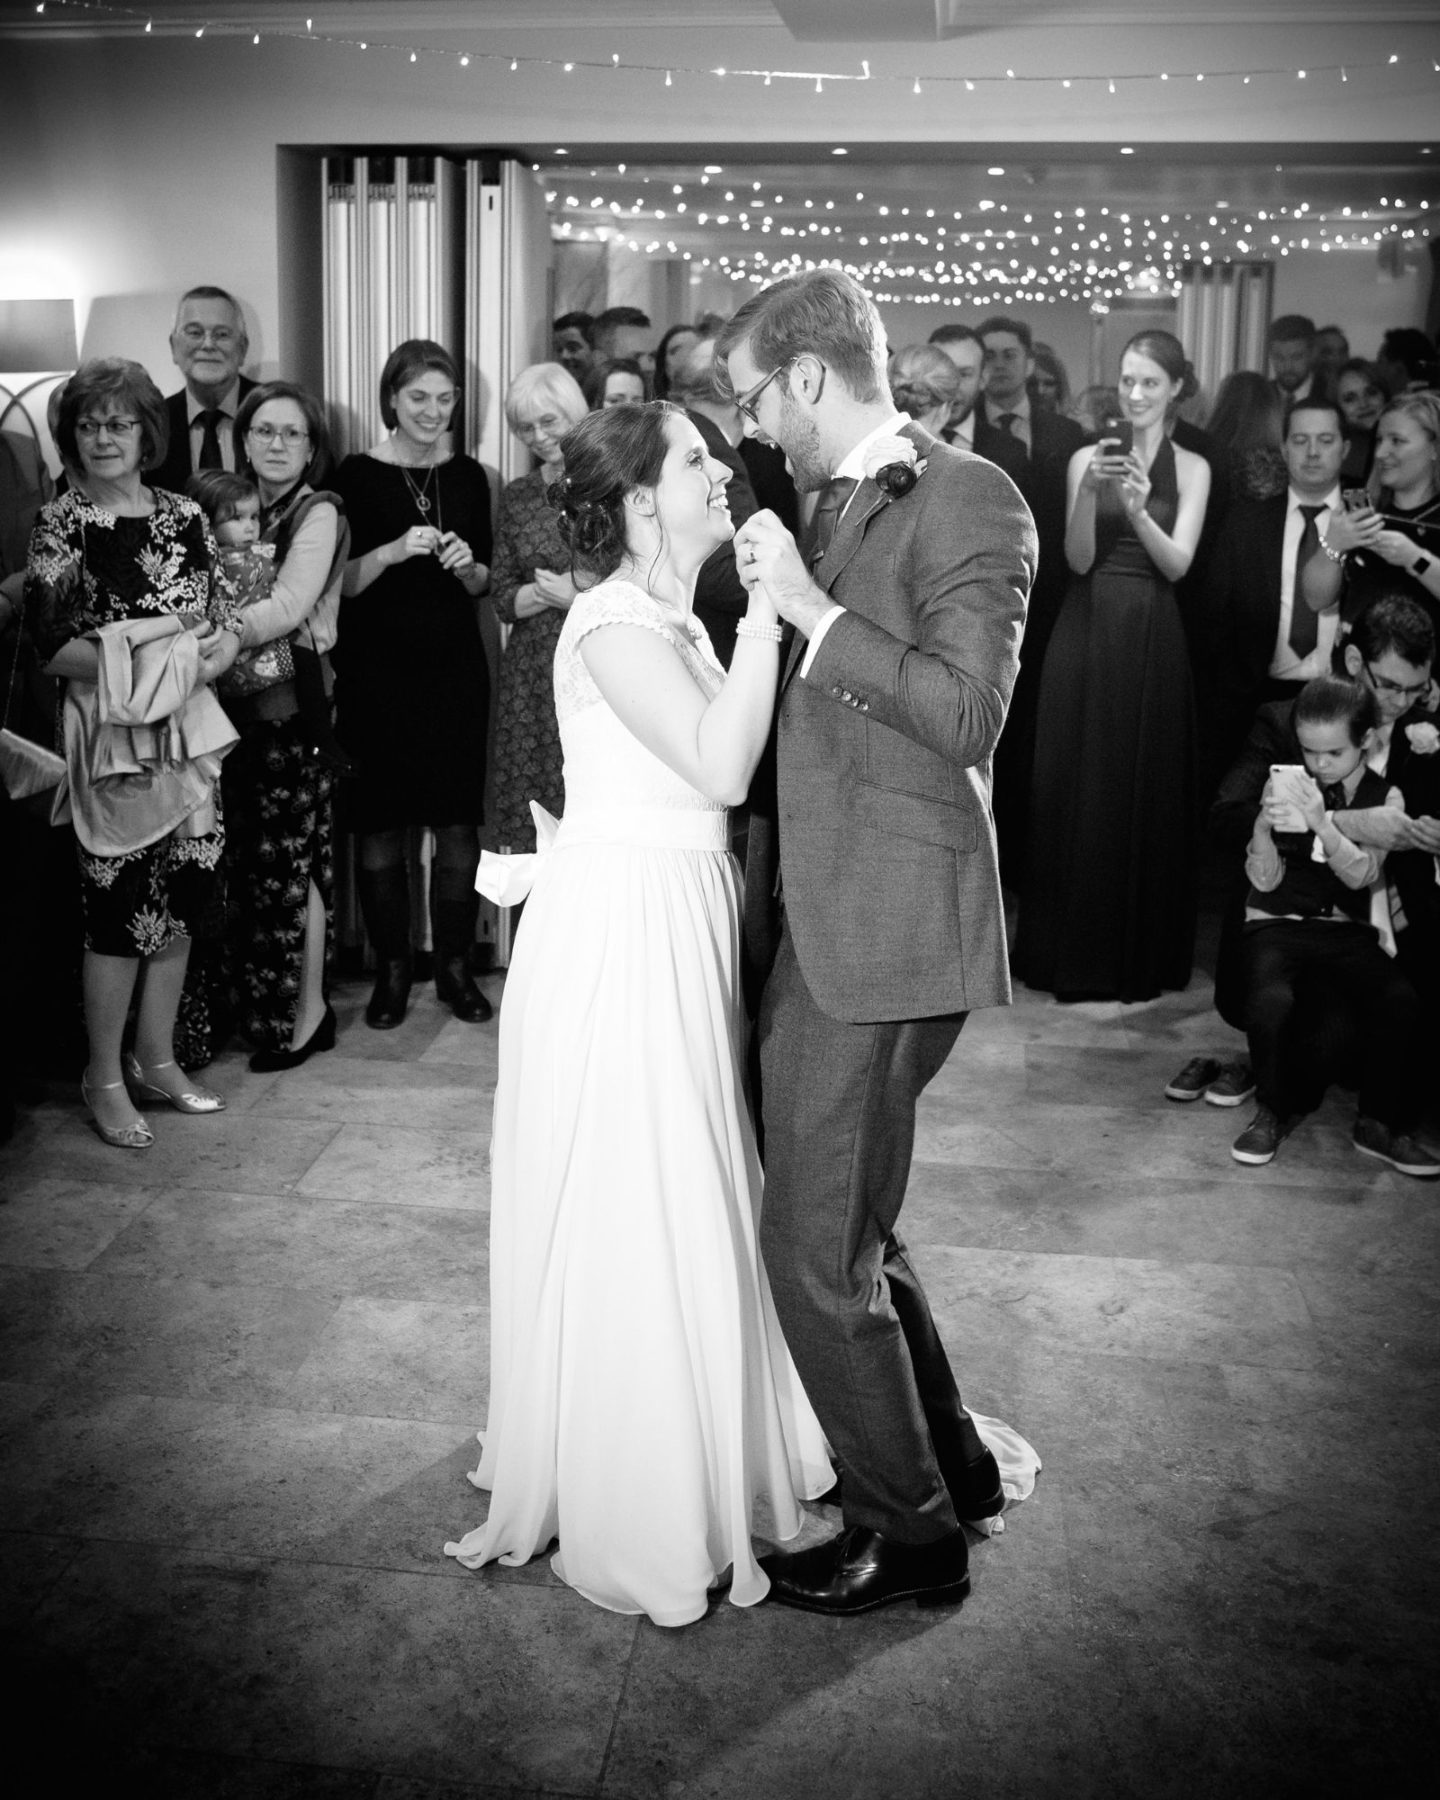 Newly married couple dancing on wedding day